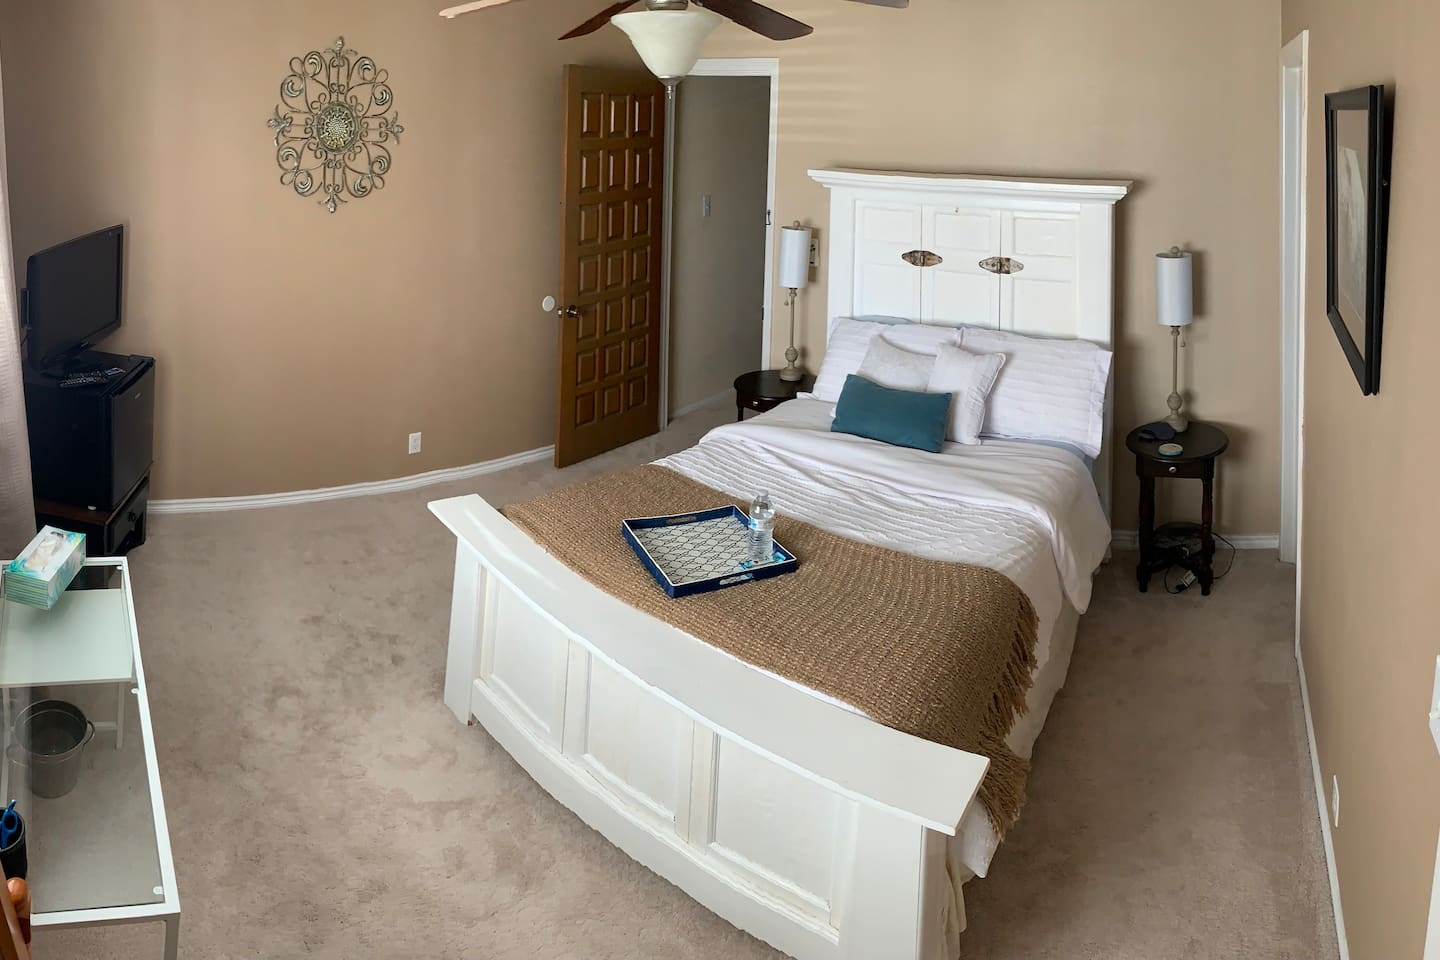 Full bed, new linens, private room with closet and bath.